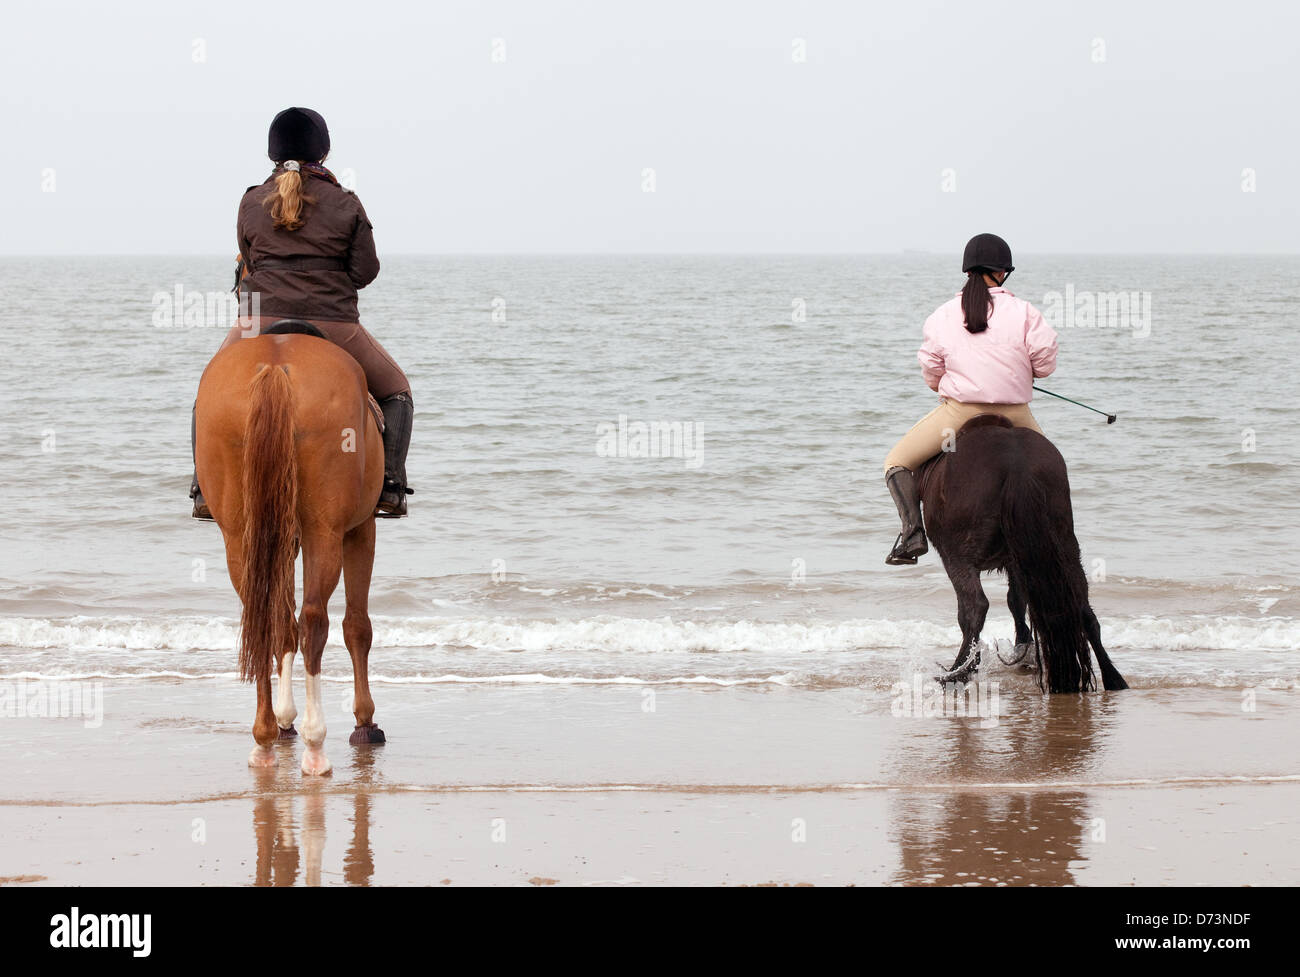 Two young women on horses riding on the beach at the waters edge Holkham Beach Norfolk UK - Stock Image